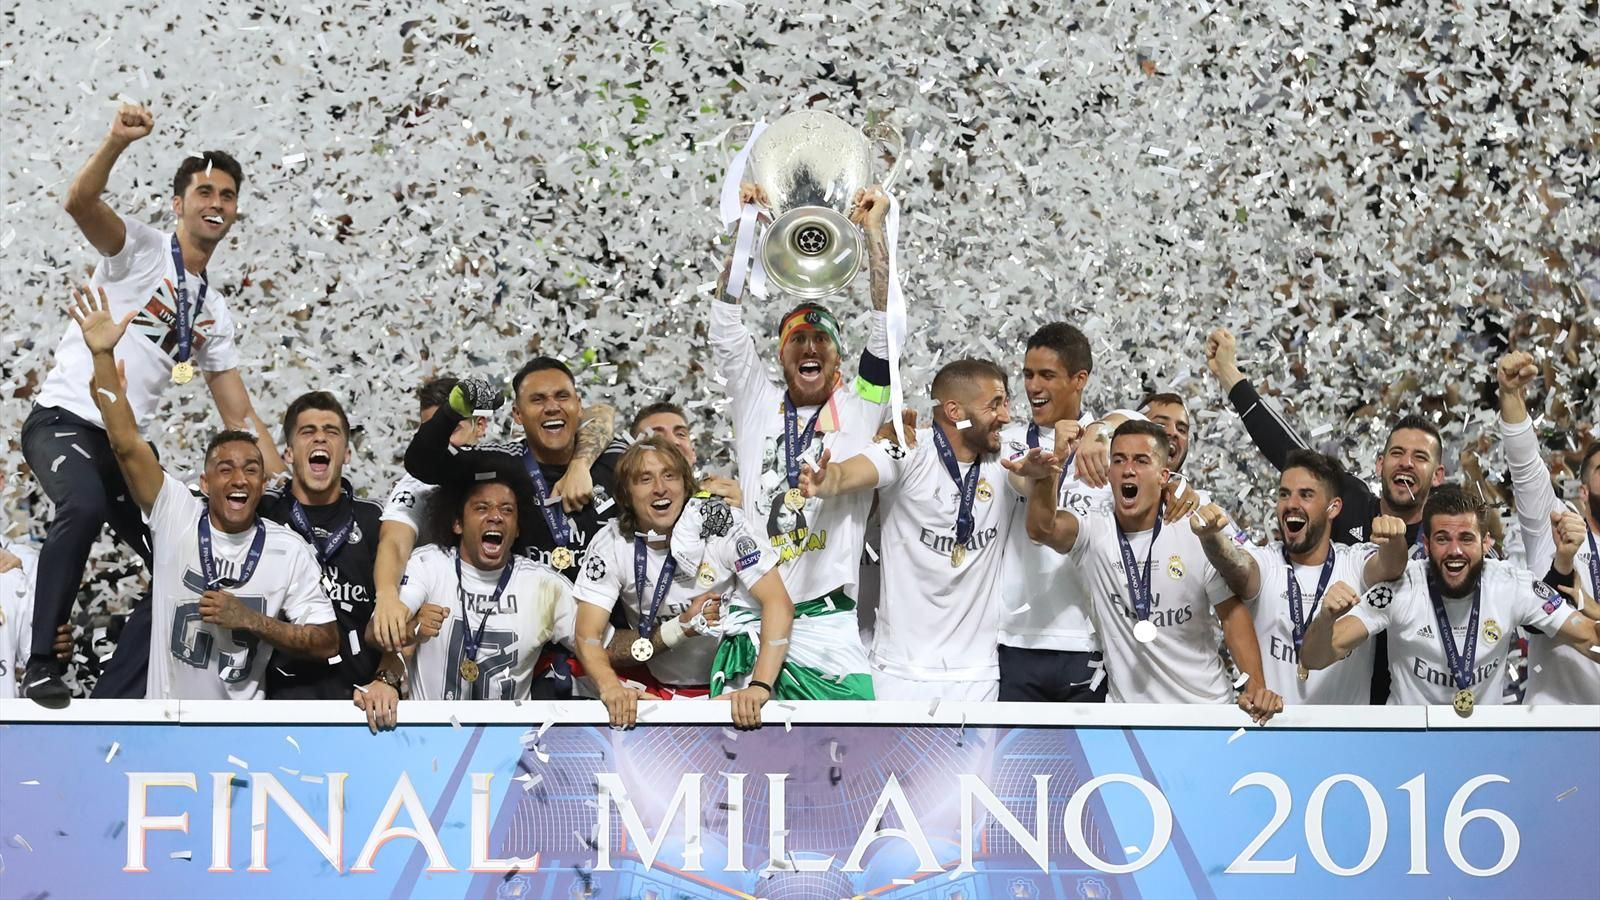 CAN REAL MADRID BREAK THE CHAMPIONS LEAGUE HOODOO?- Abdulmueez Alao